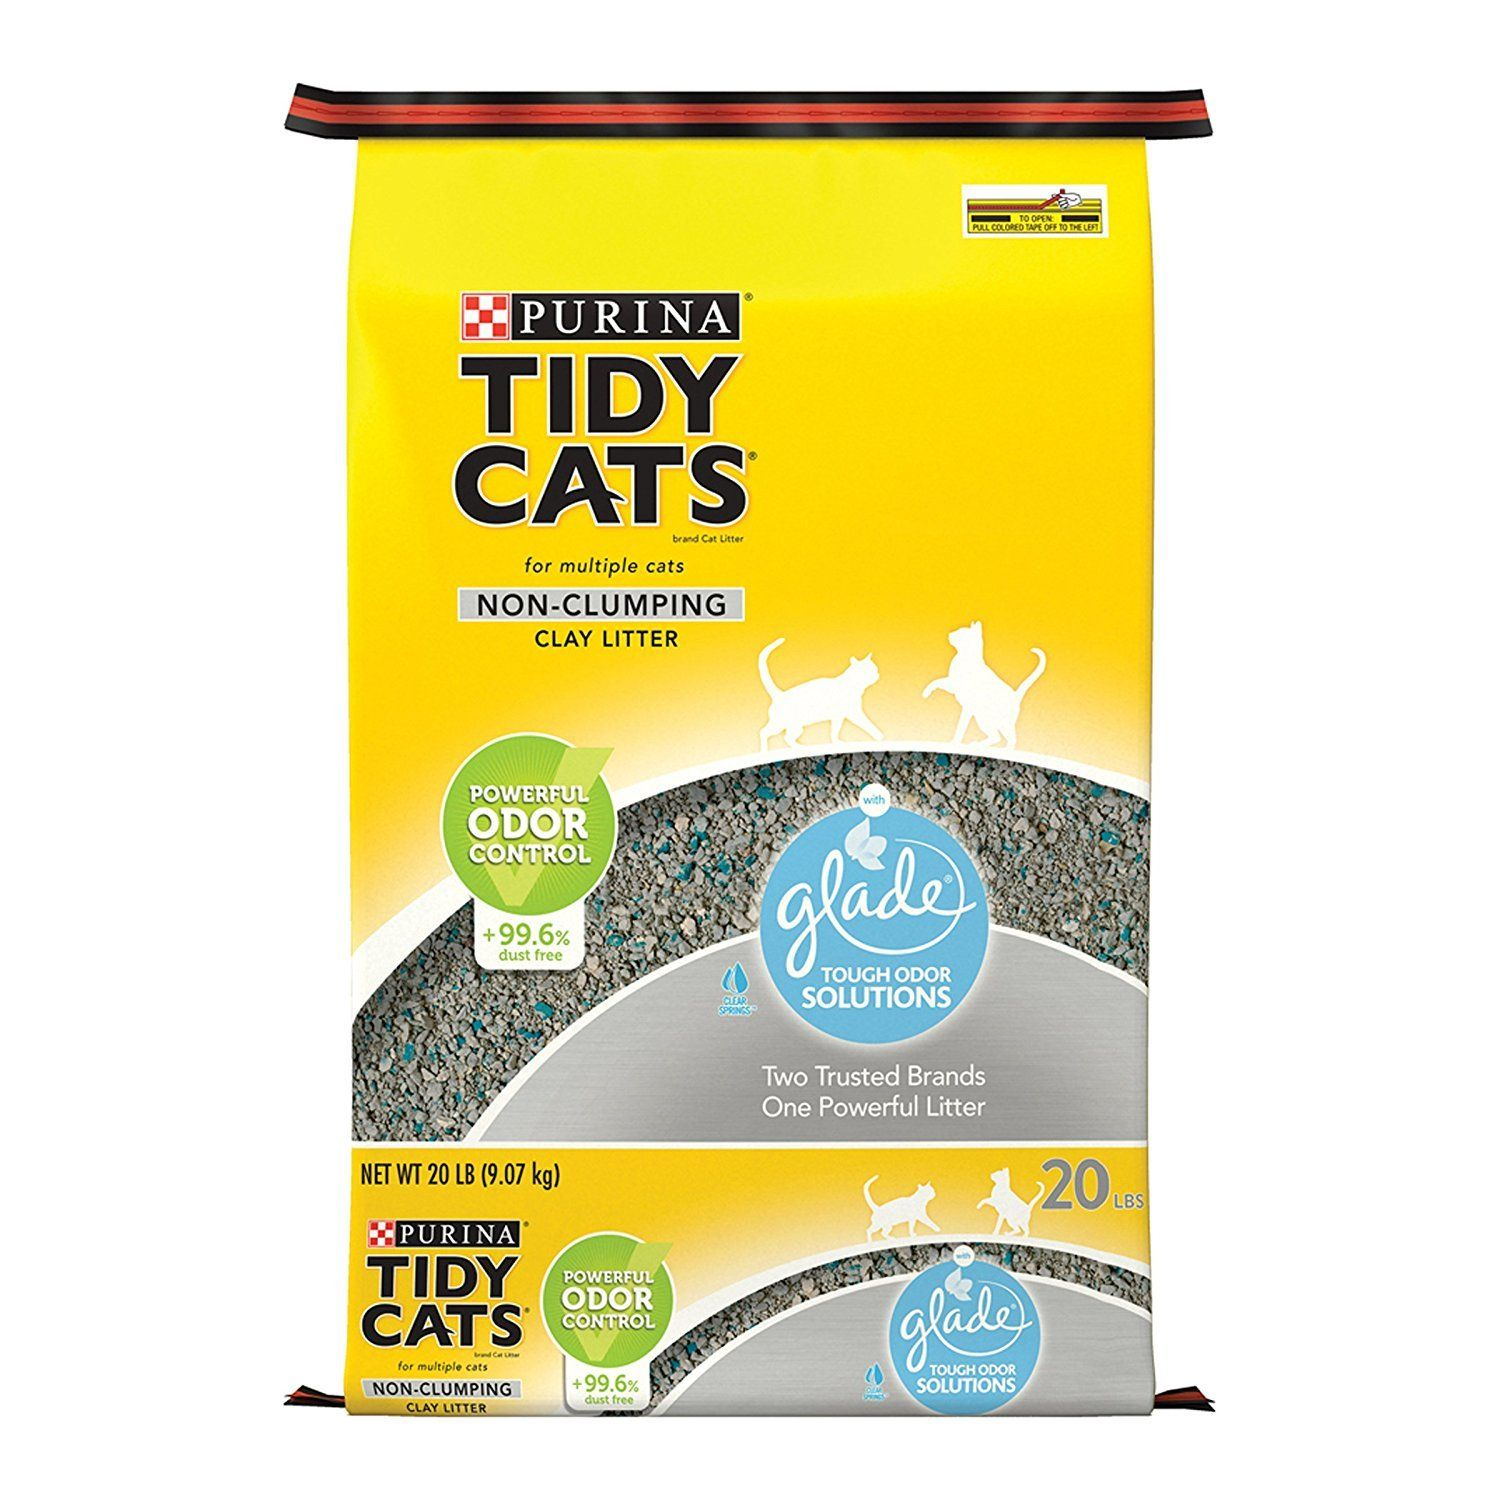 Purina Tidy Cats NonClumping Cat Litter Many thanks